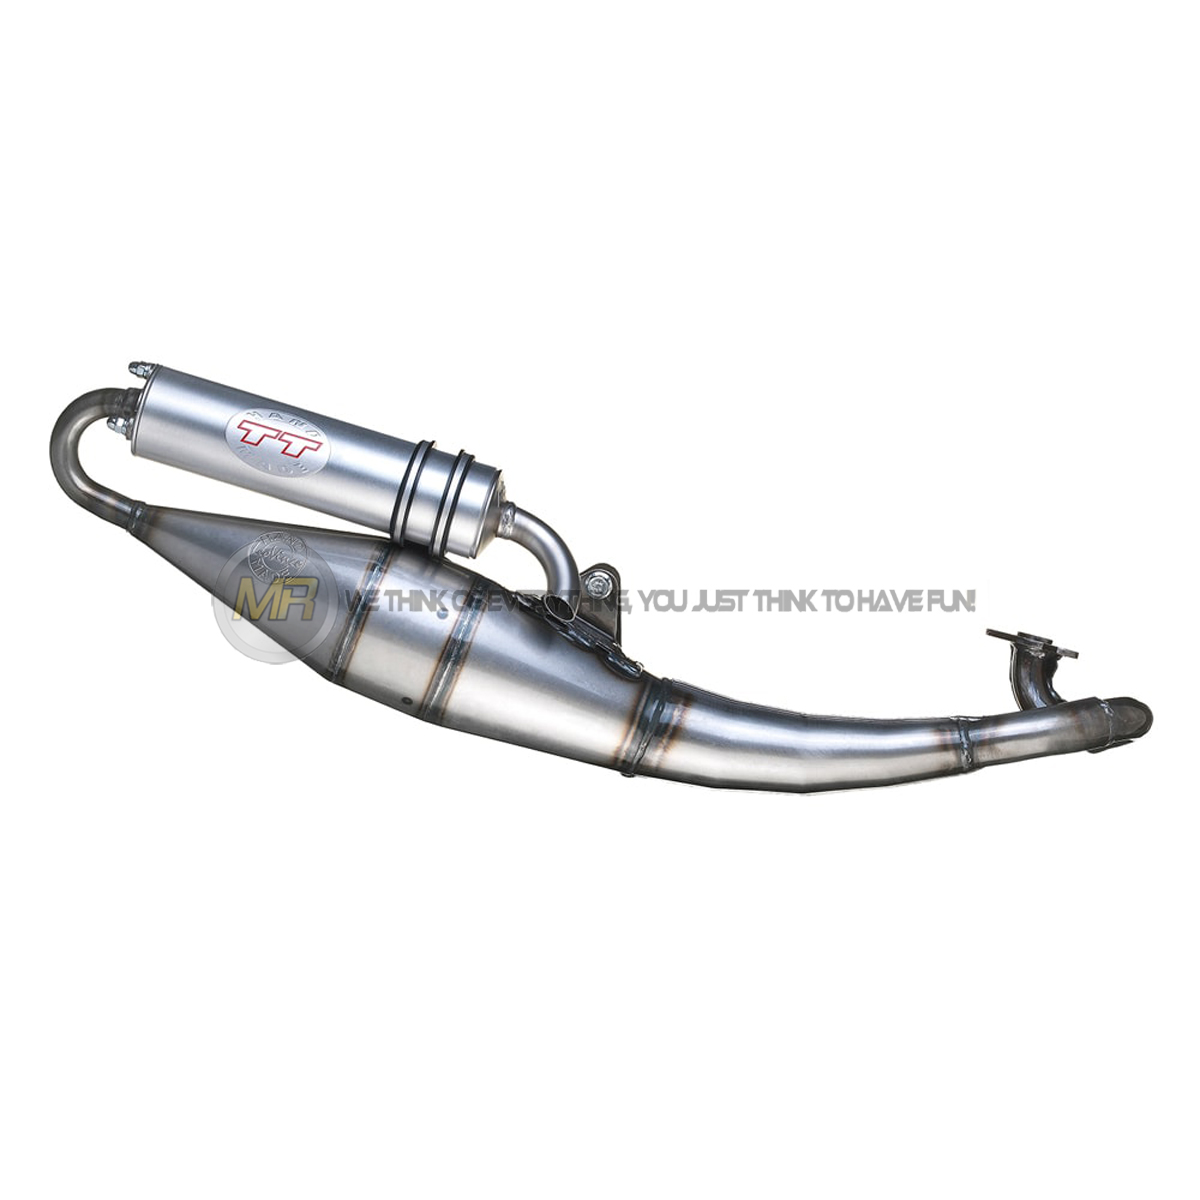 GILERA RUNNER 50 SP 2005 05 FULL SYSTEM EXHAUST HEADER